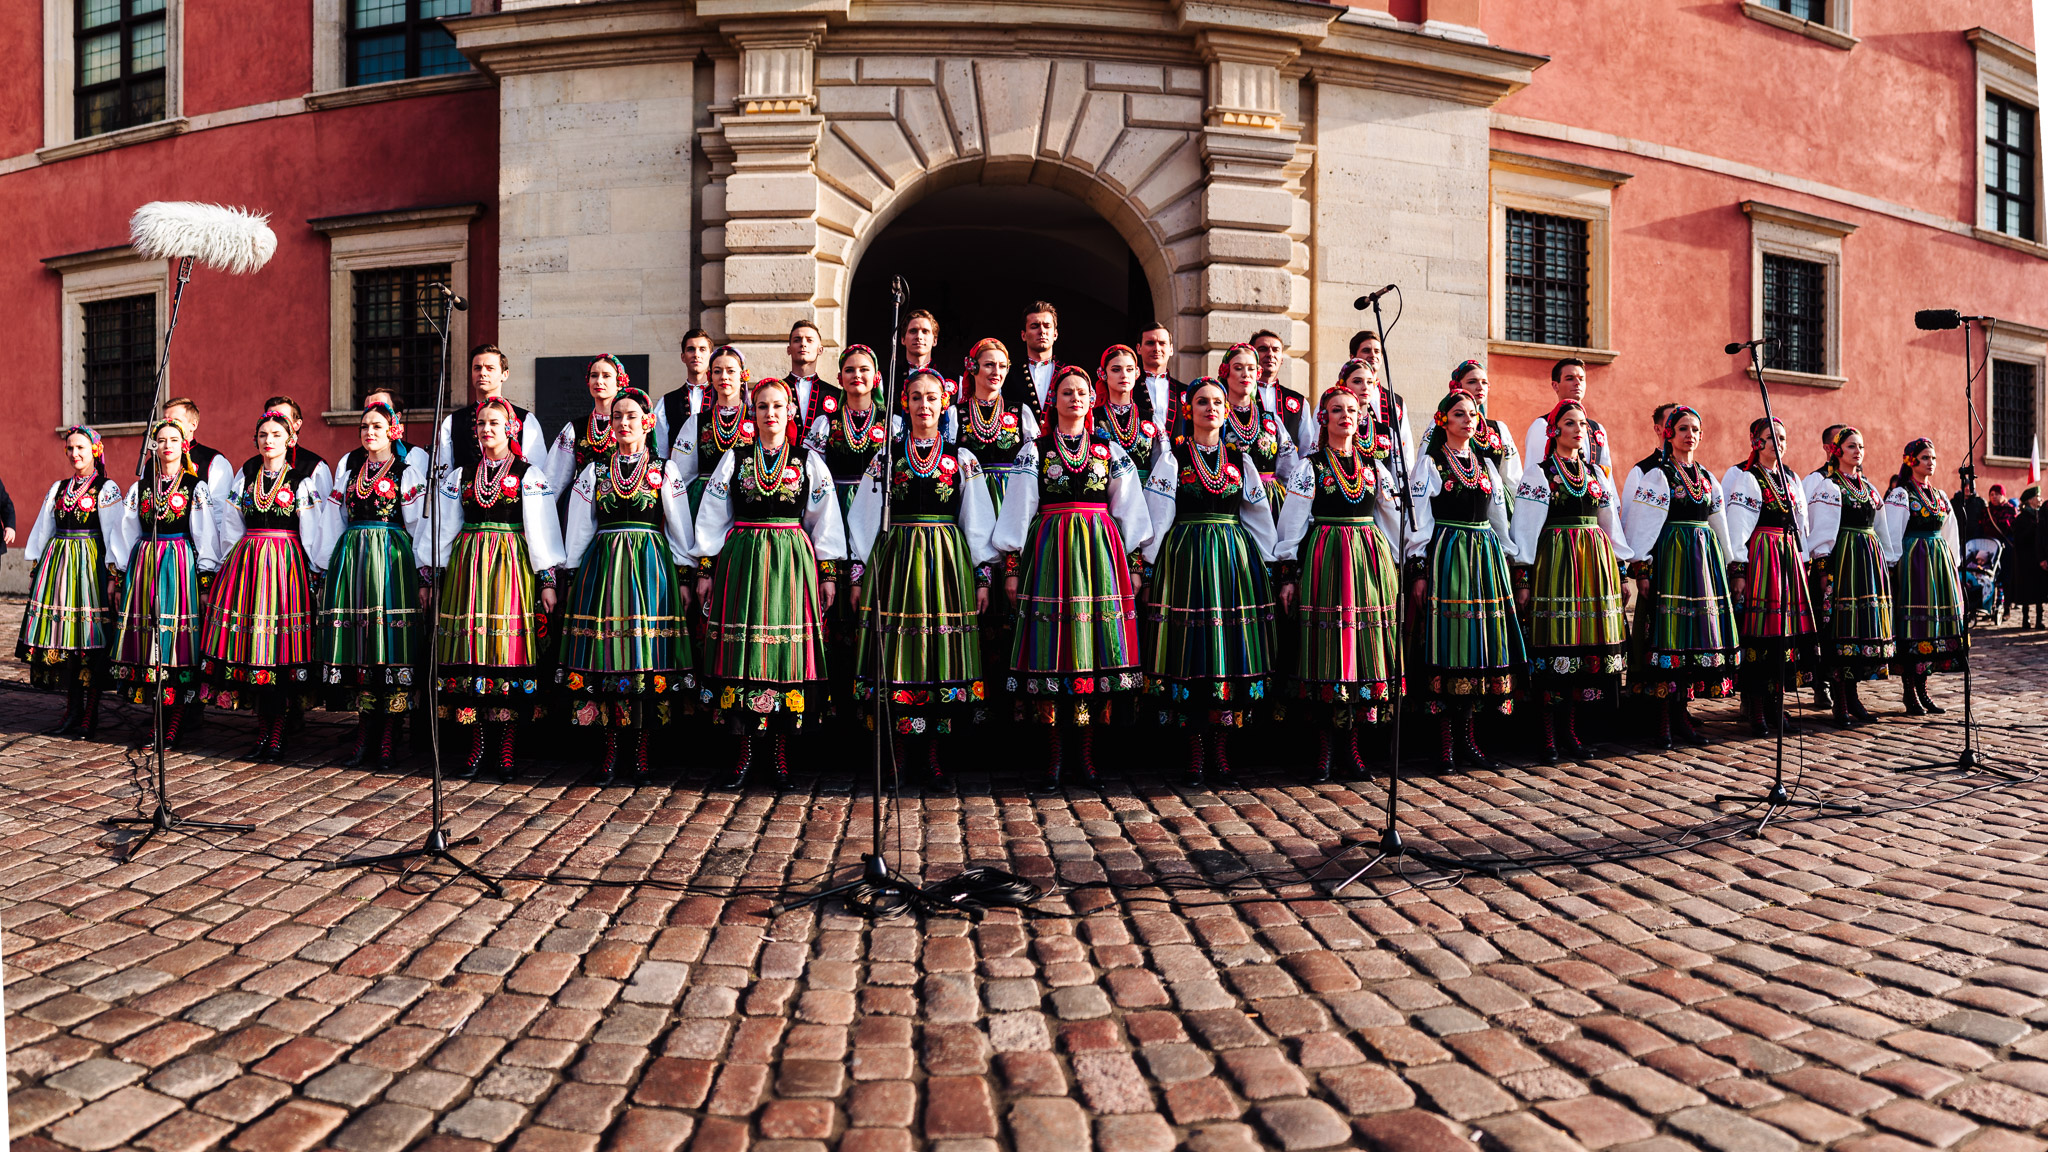 Women in folk costumes lined up in front of the Royal Castle in Warsaw, ready to sing the national anthem